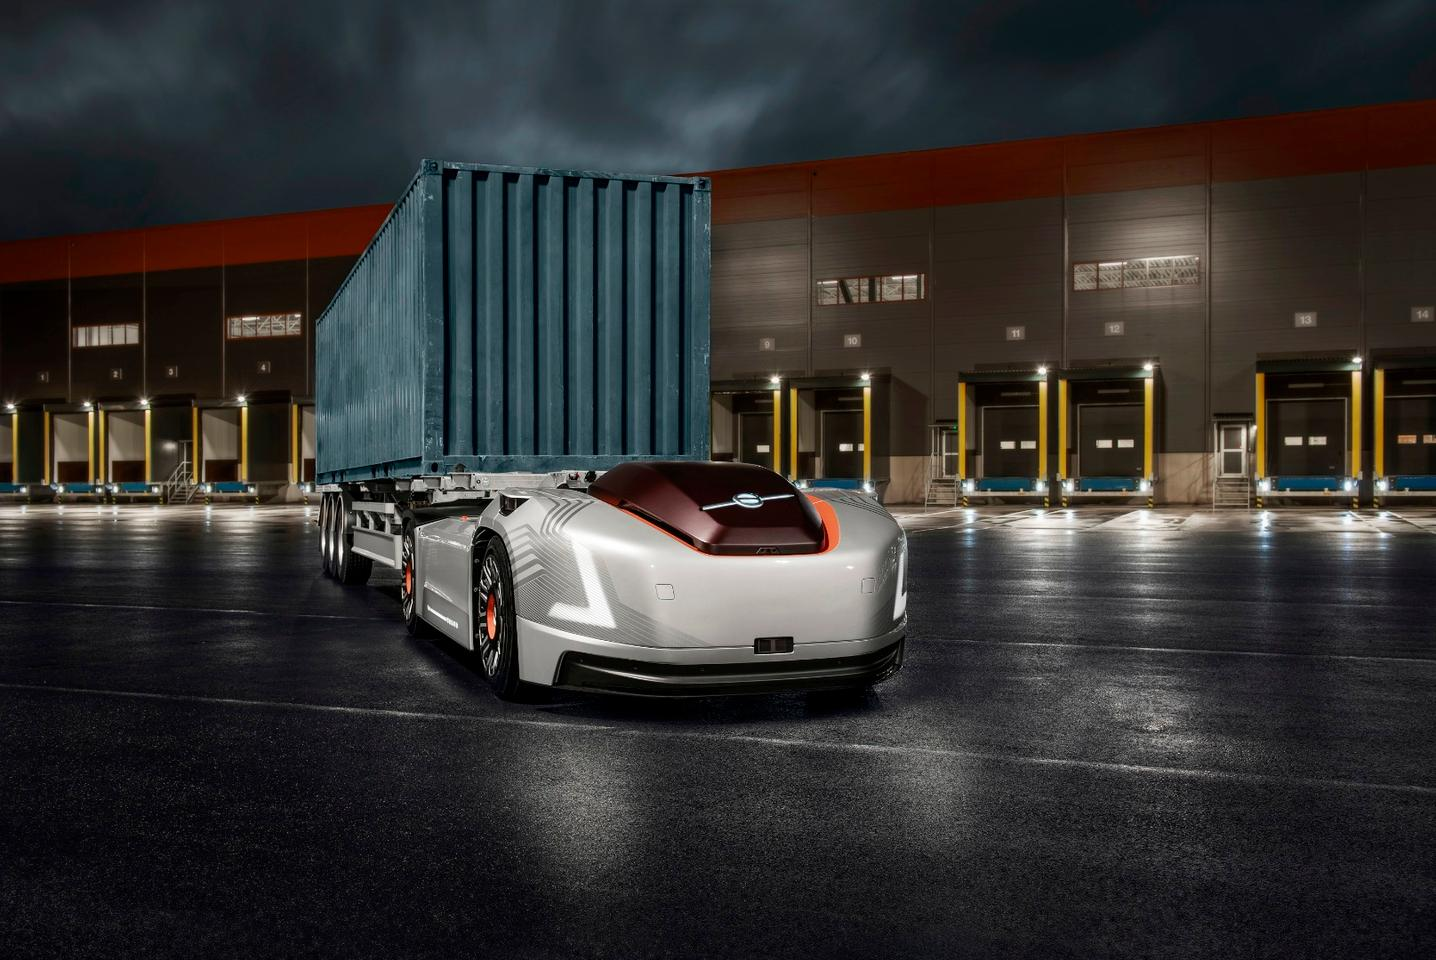 Volvo Trucks' cabin-less self-driving hauler takes on its